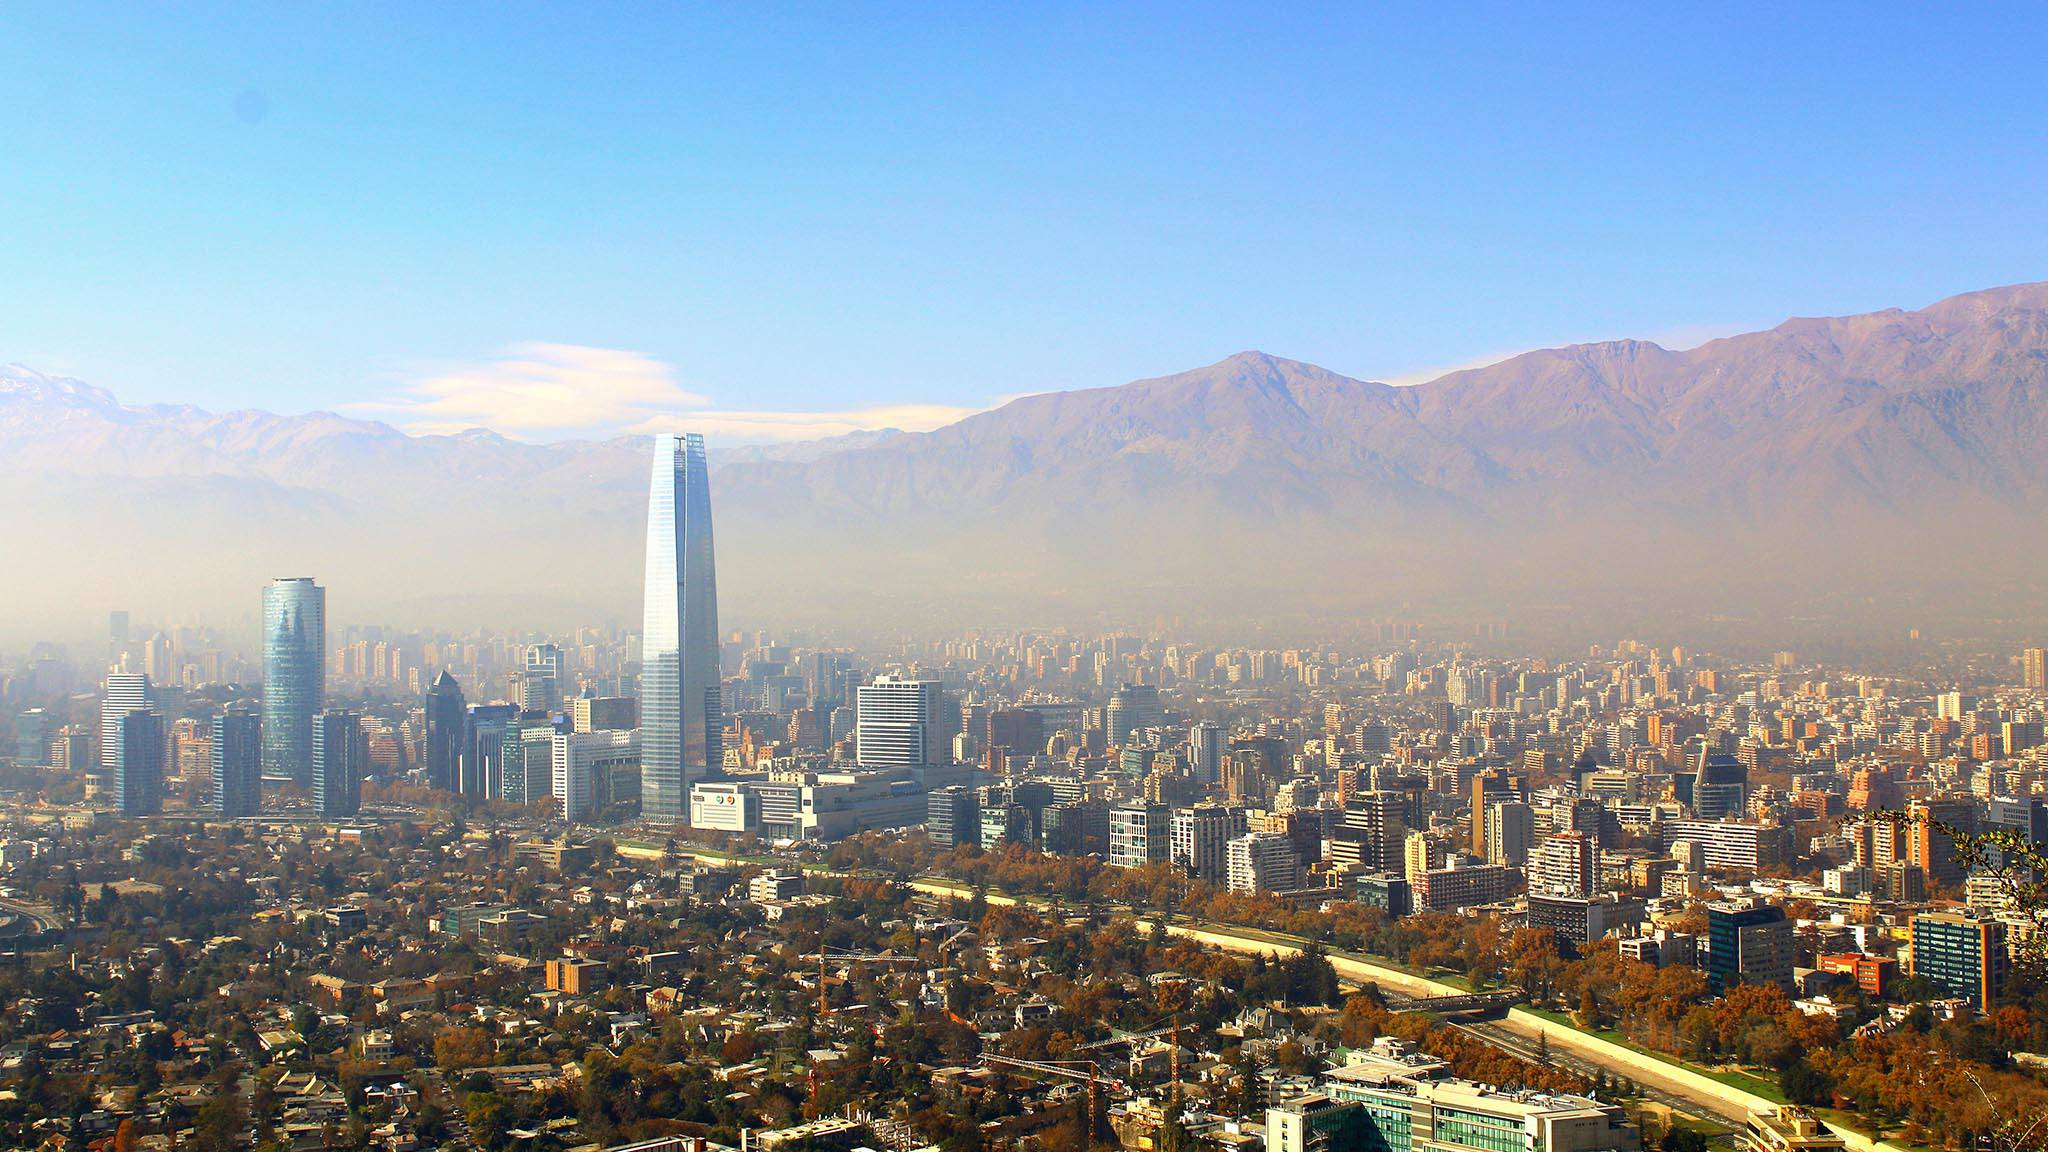 Santiago de Chile expat Community for Santiago de Chile expats ...